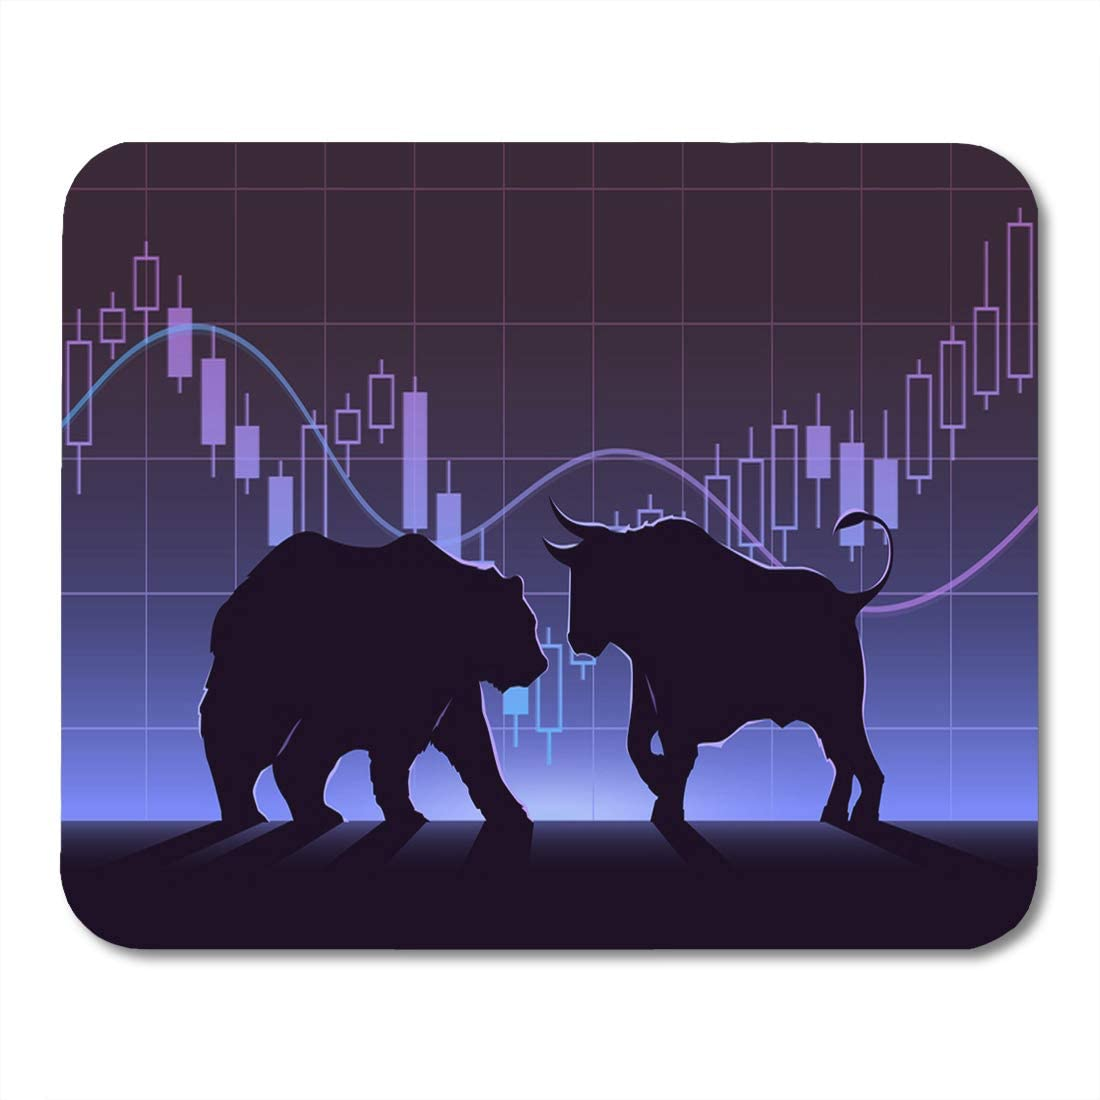 Nakamela Mouse Pads Black Street Stock Exchange Trading The Bulls and Bears Struggle Equity Market Concept Modern Flat Design Mouse mats 9.5 x 7.9 Mouse pad Suitable for Notebook Desktop Computers